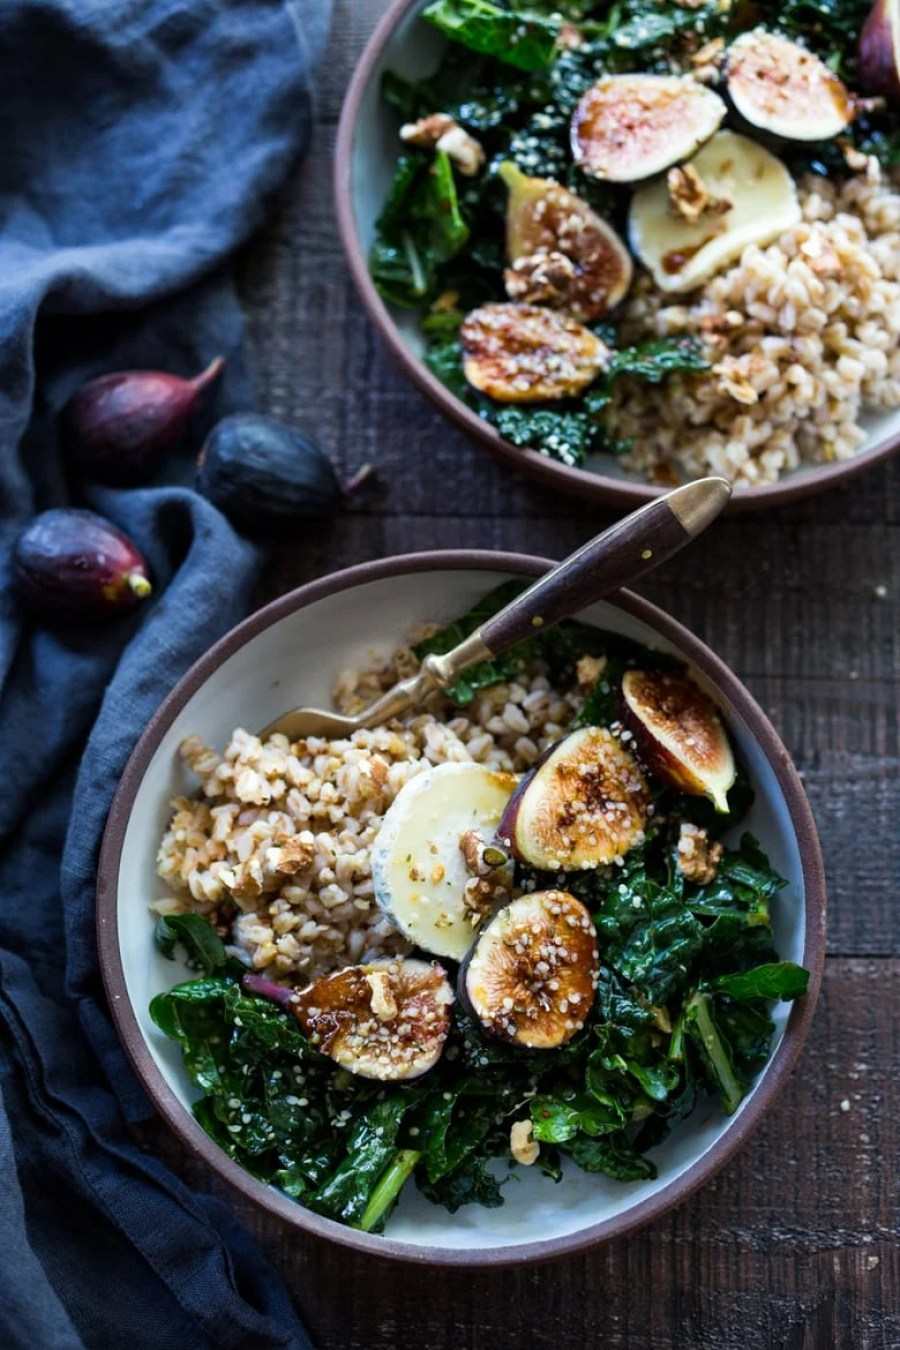 Farro Bowl with Figs, Kale & French Goat Cheese